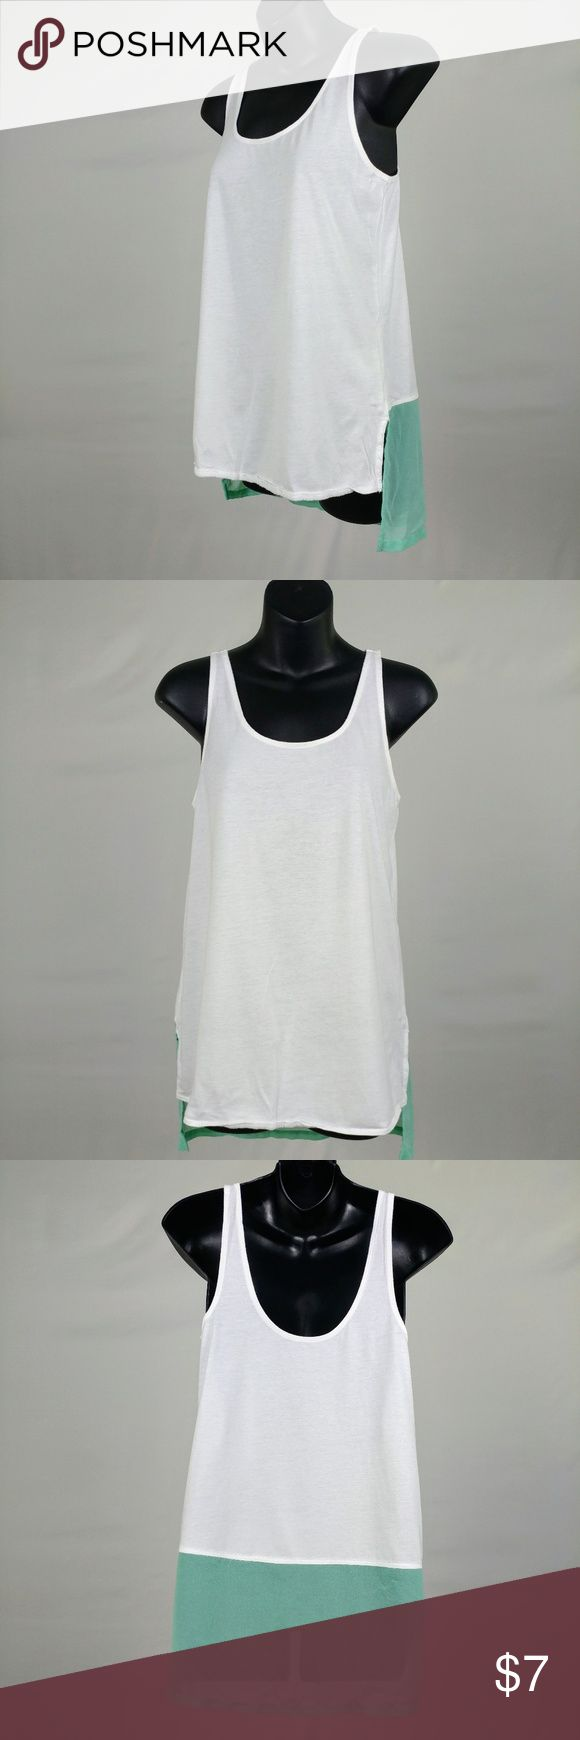 Light weight loose tank top with a sheer back pane Light weight loose tank top with a sheer back panel. Great for hot days. Express Tops Tank Tops